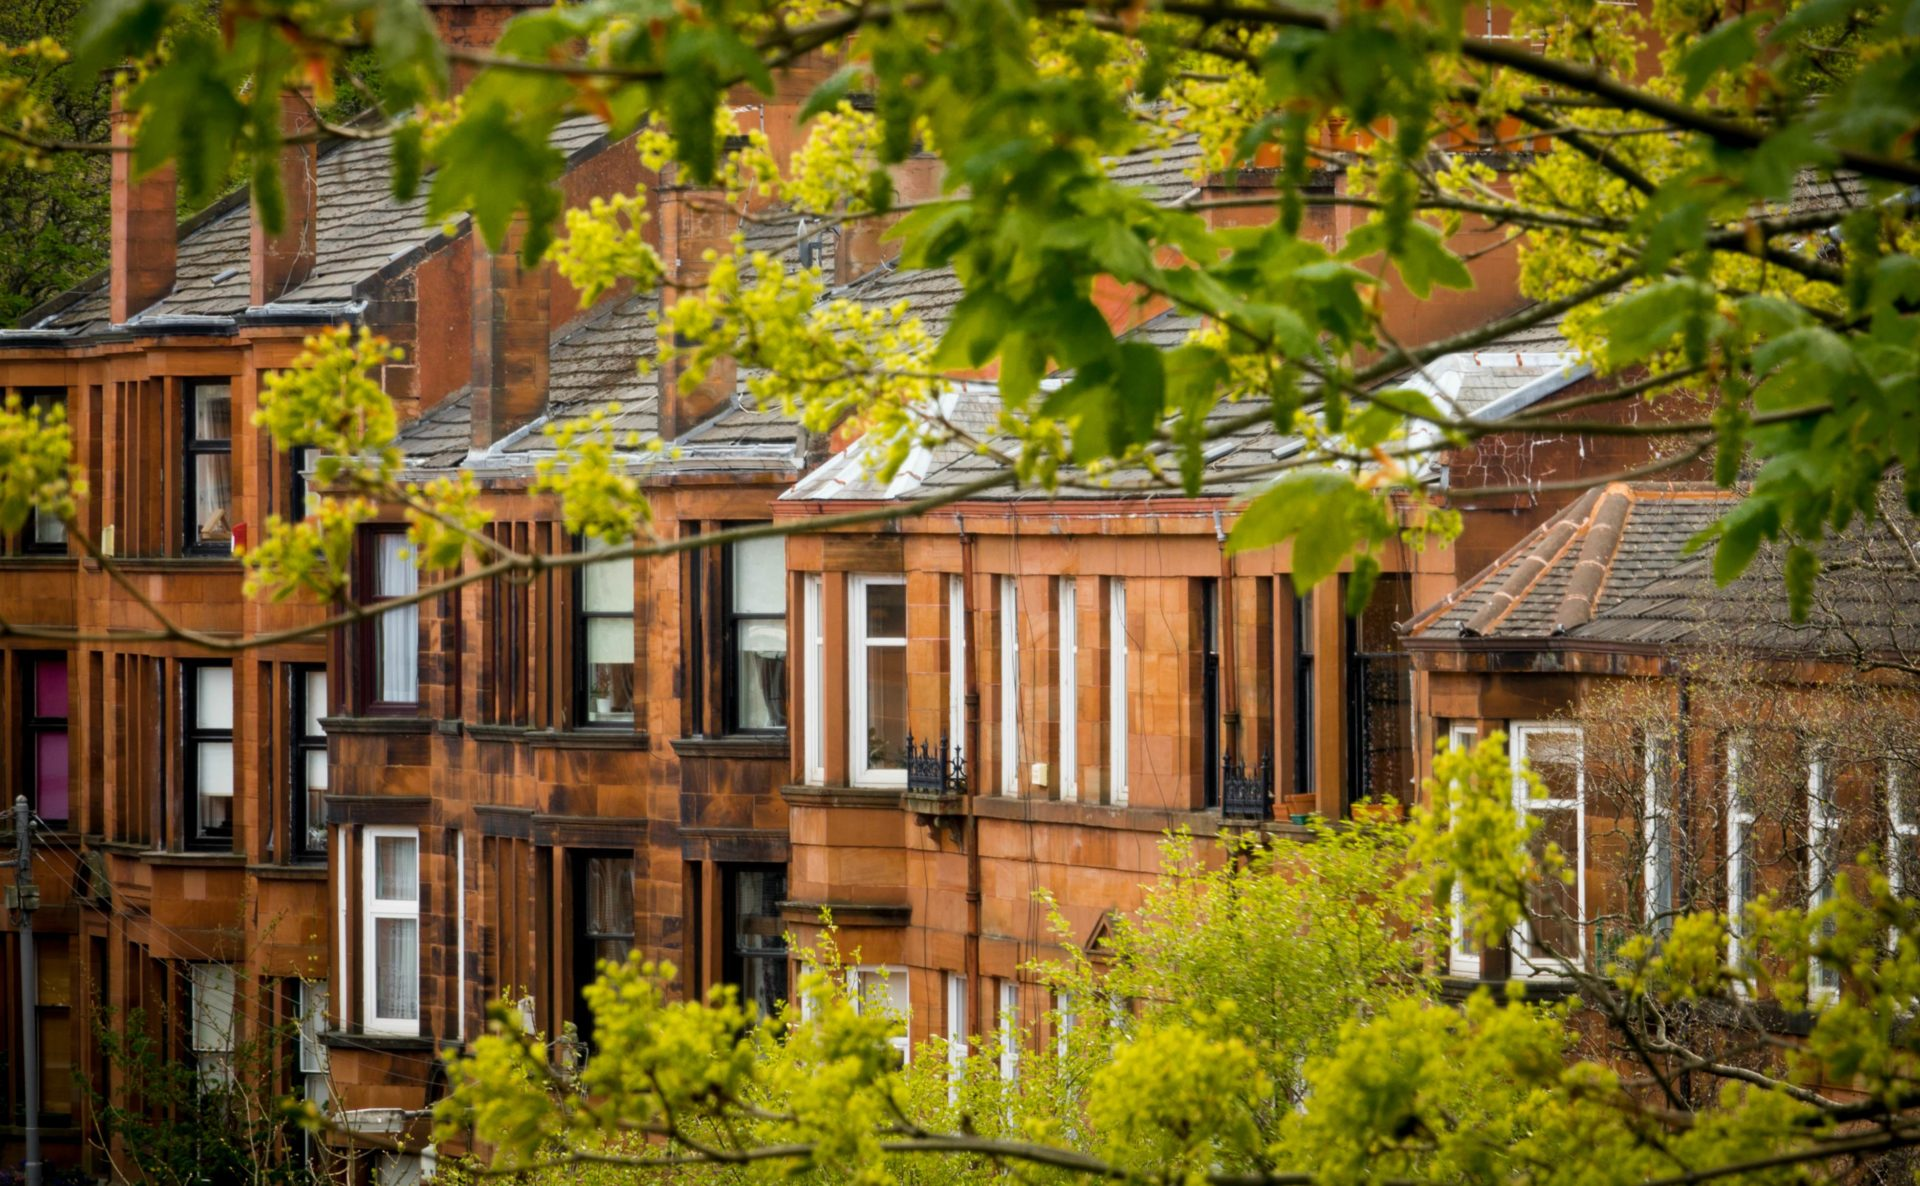 Why buy property in Wales, Scotland or Northern Ireland?